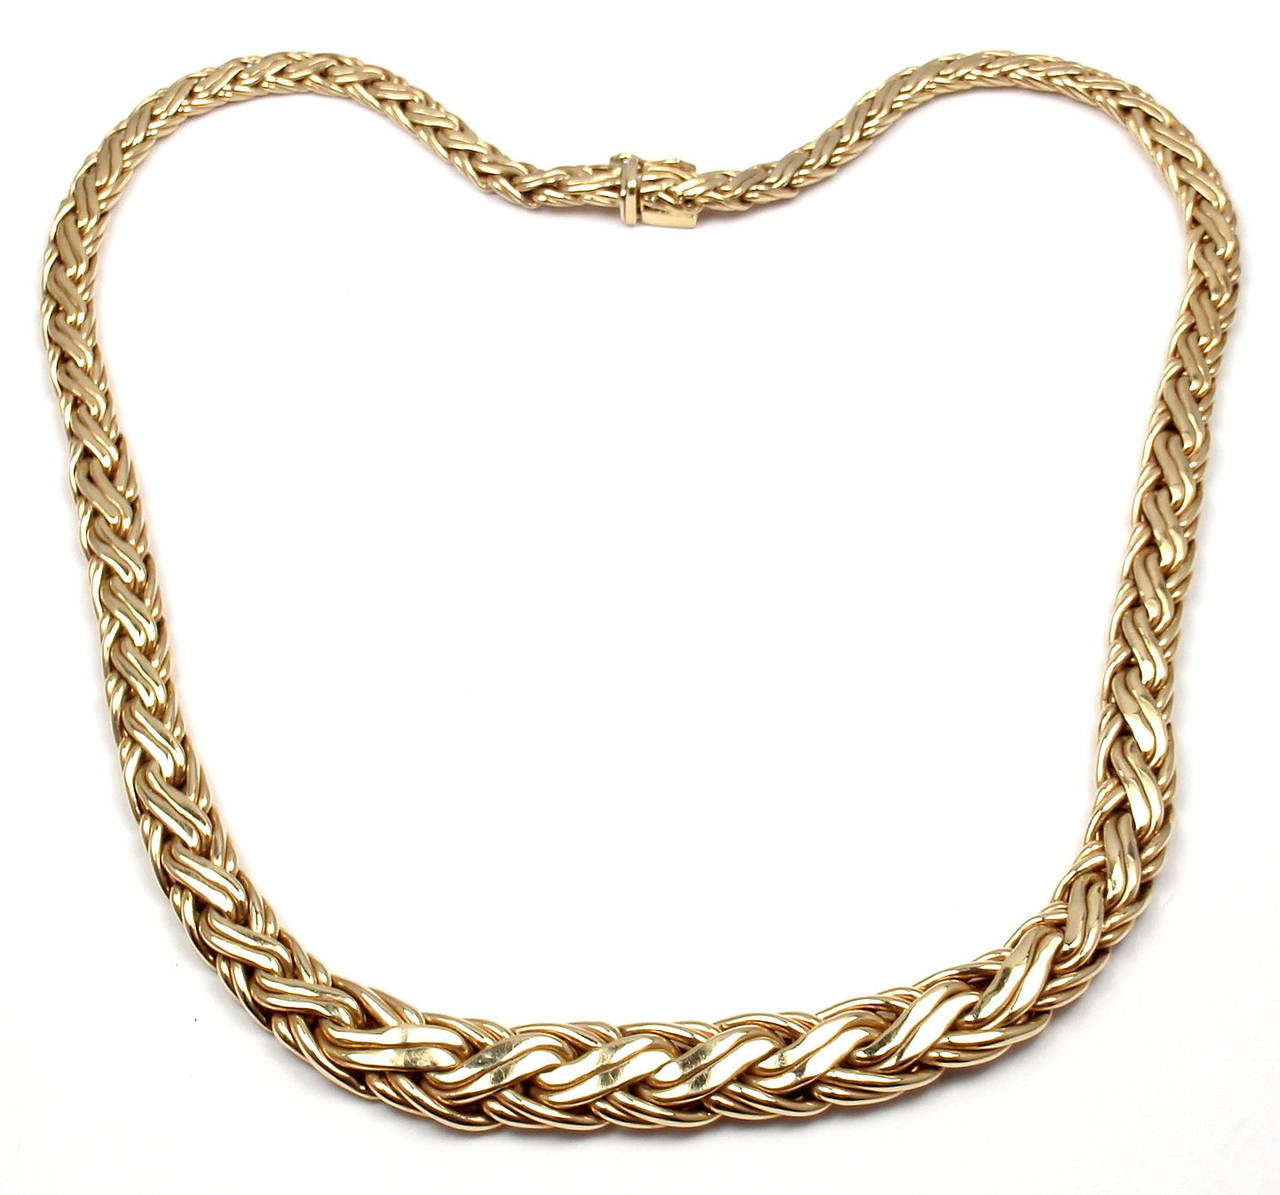 details jewelry necklaces at and co yellow l by length choker j s tiffany basket gold weave necklace id